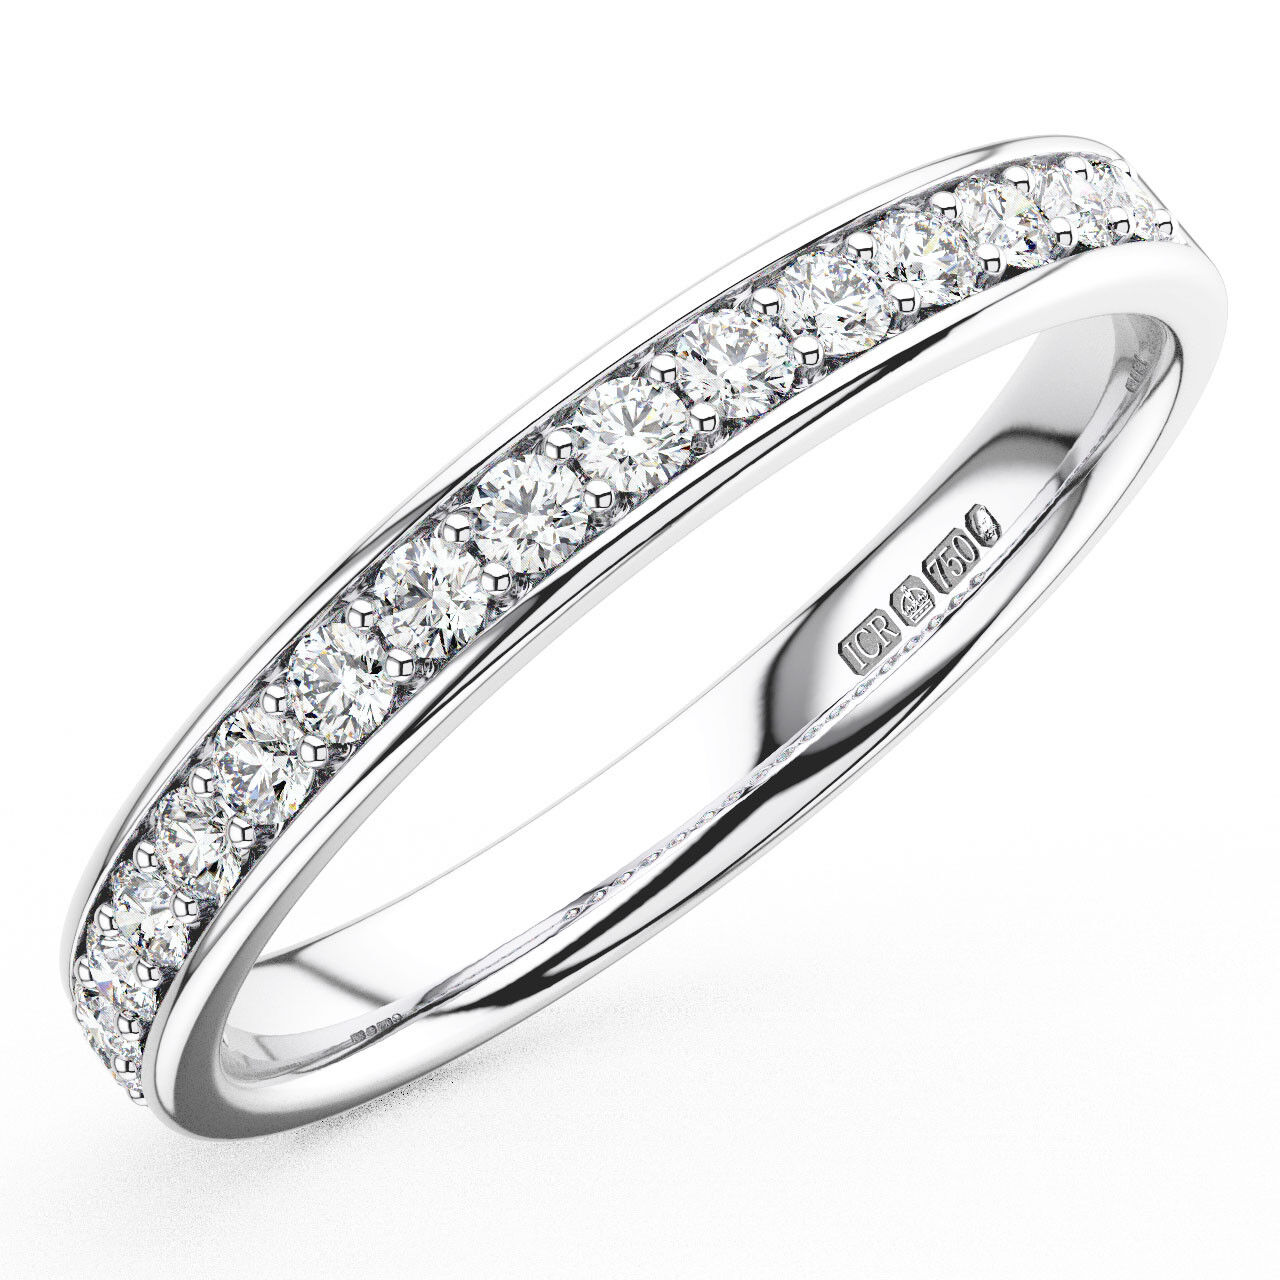 0.25CT Round Brilliant Cut Diamonds Half Eternity Wedding Ring in 950Platinum